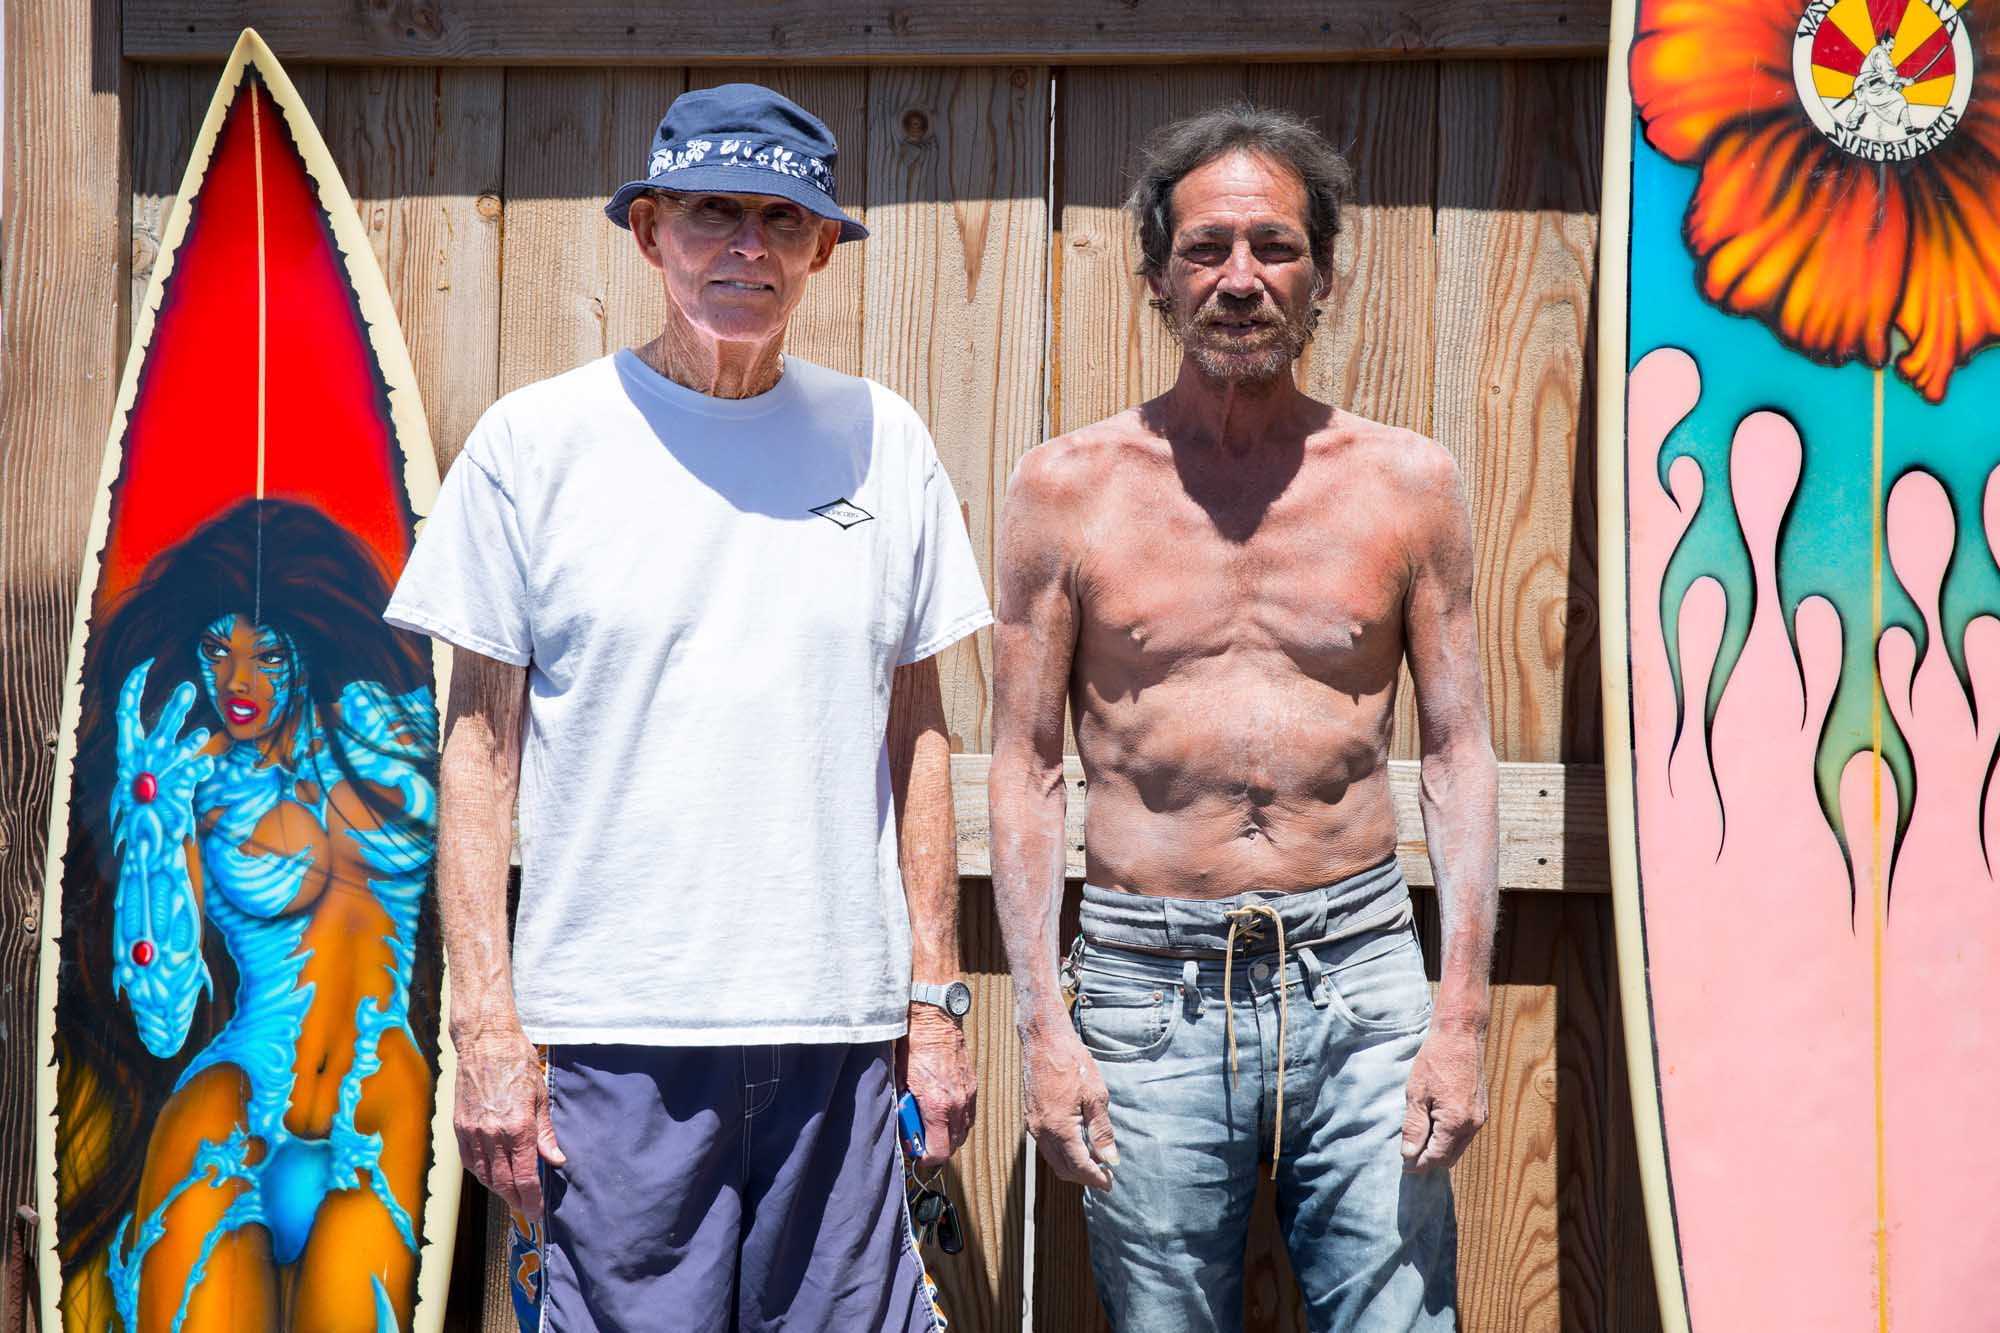 Work of Art: Cypress Street fixture Keoni Boyd, after decades in surfboard industry, looks back with a Hermosa Beach gallery show steps from the places he calls home